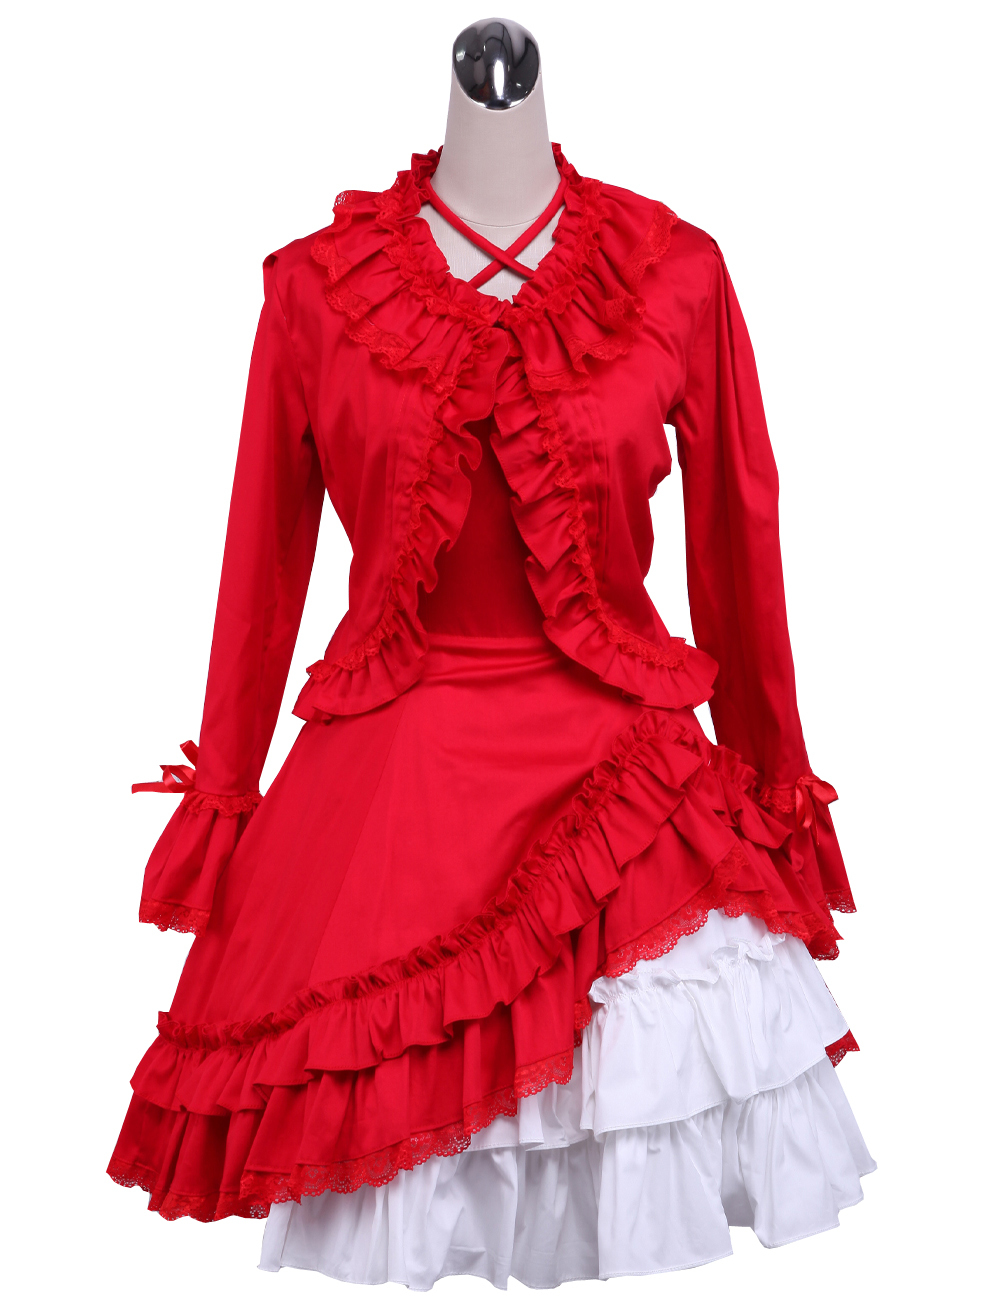 Primary image for ZeroMart Red Cotton Ruffle Lace Retro Victorian Long Sleeve Classic Lolita Dress